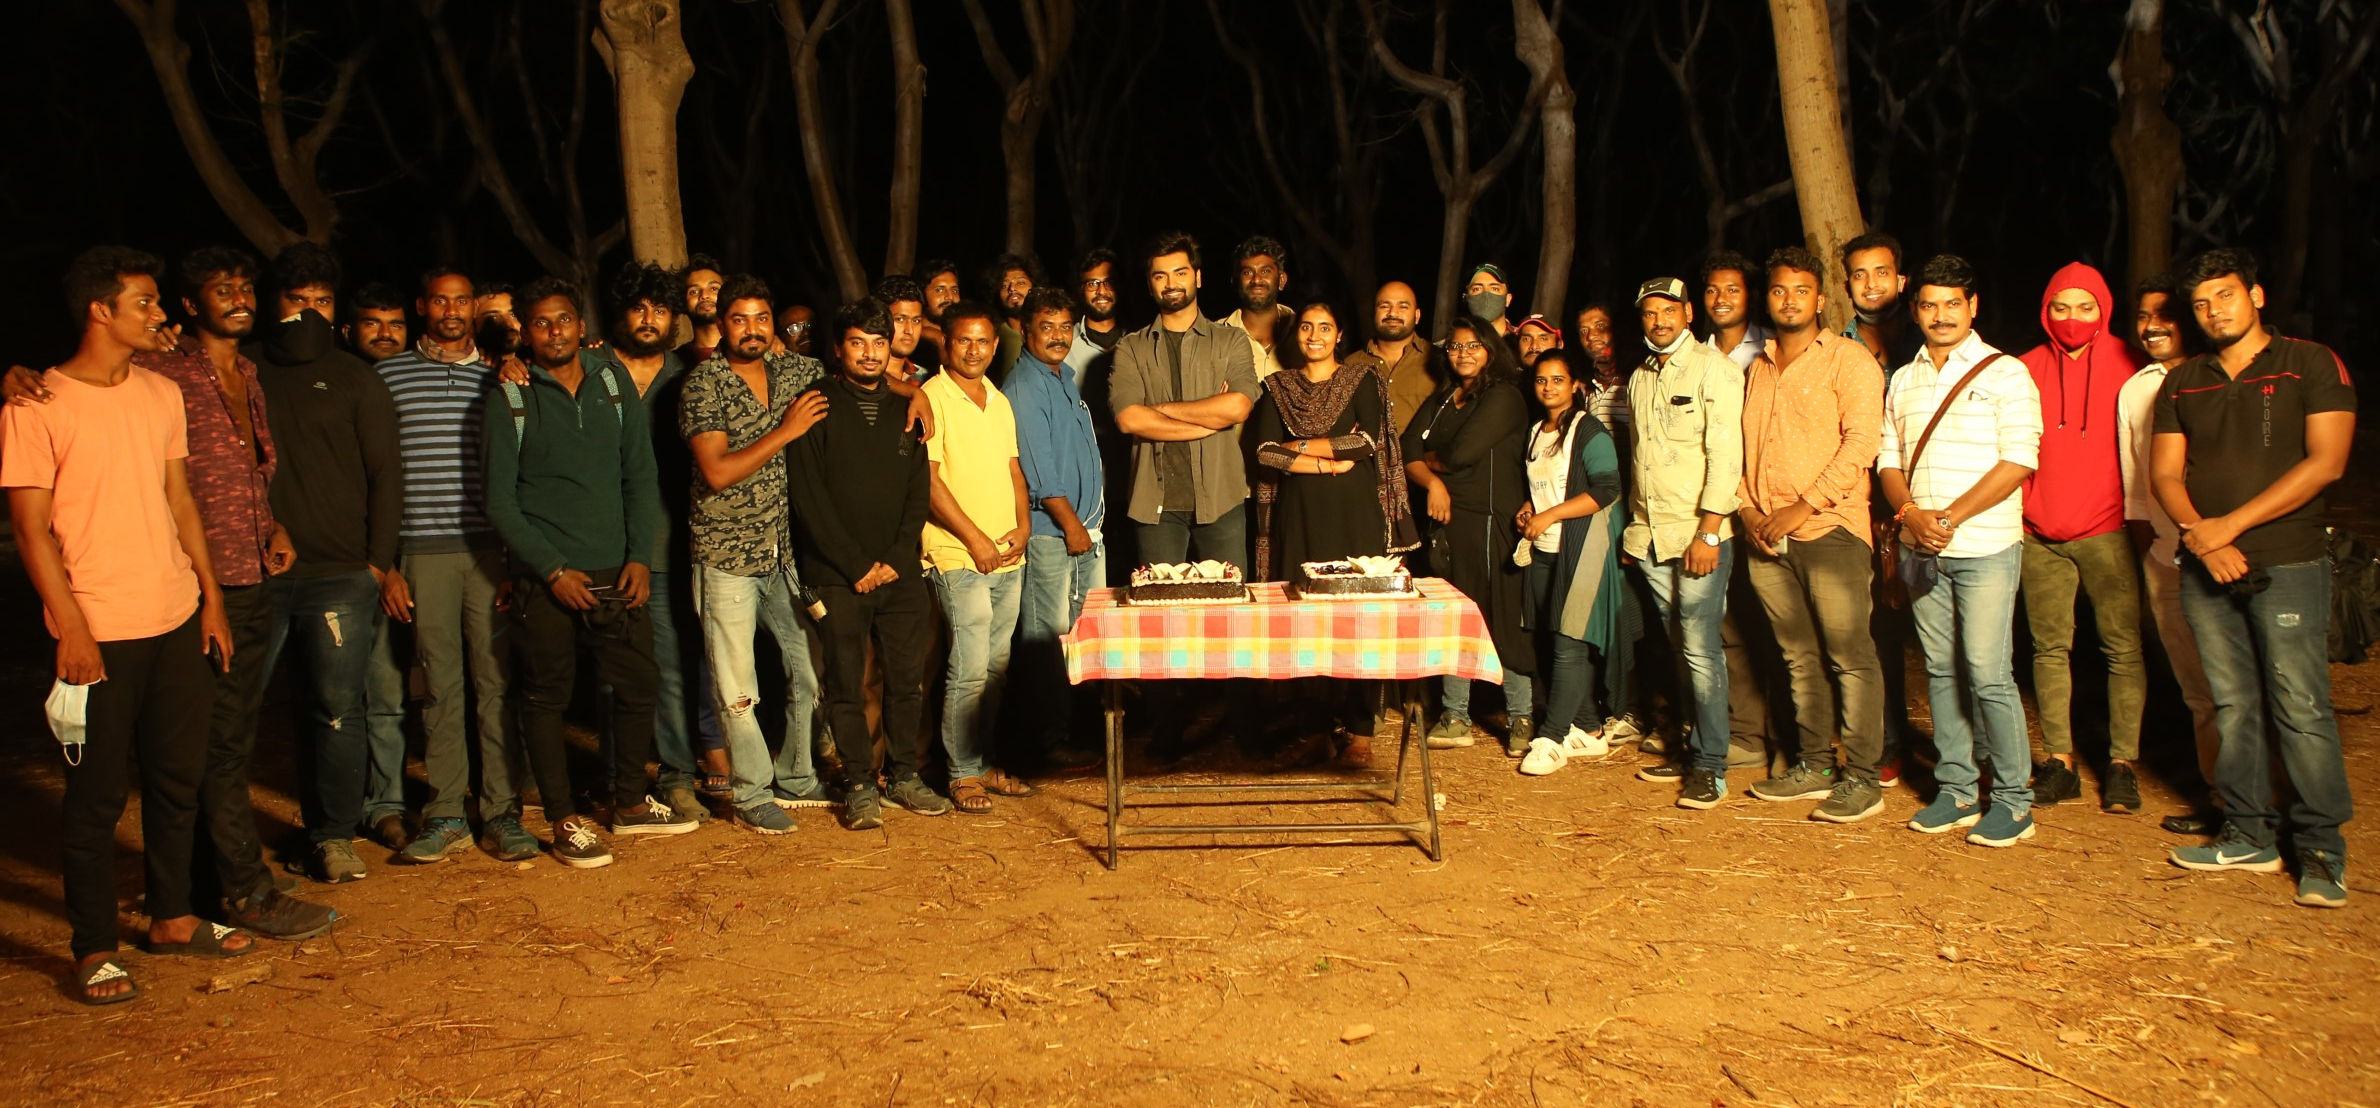 Pramod Films' 25th production Sam Anton directorial Atharvaa Murali starrer wraps up shooting in Hyderabad in a single stretch'